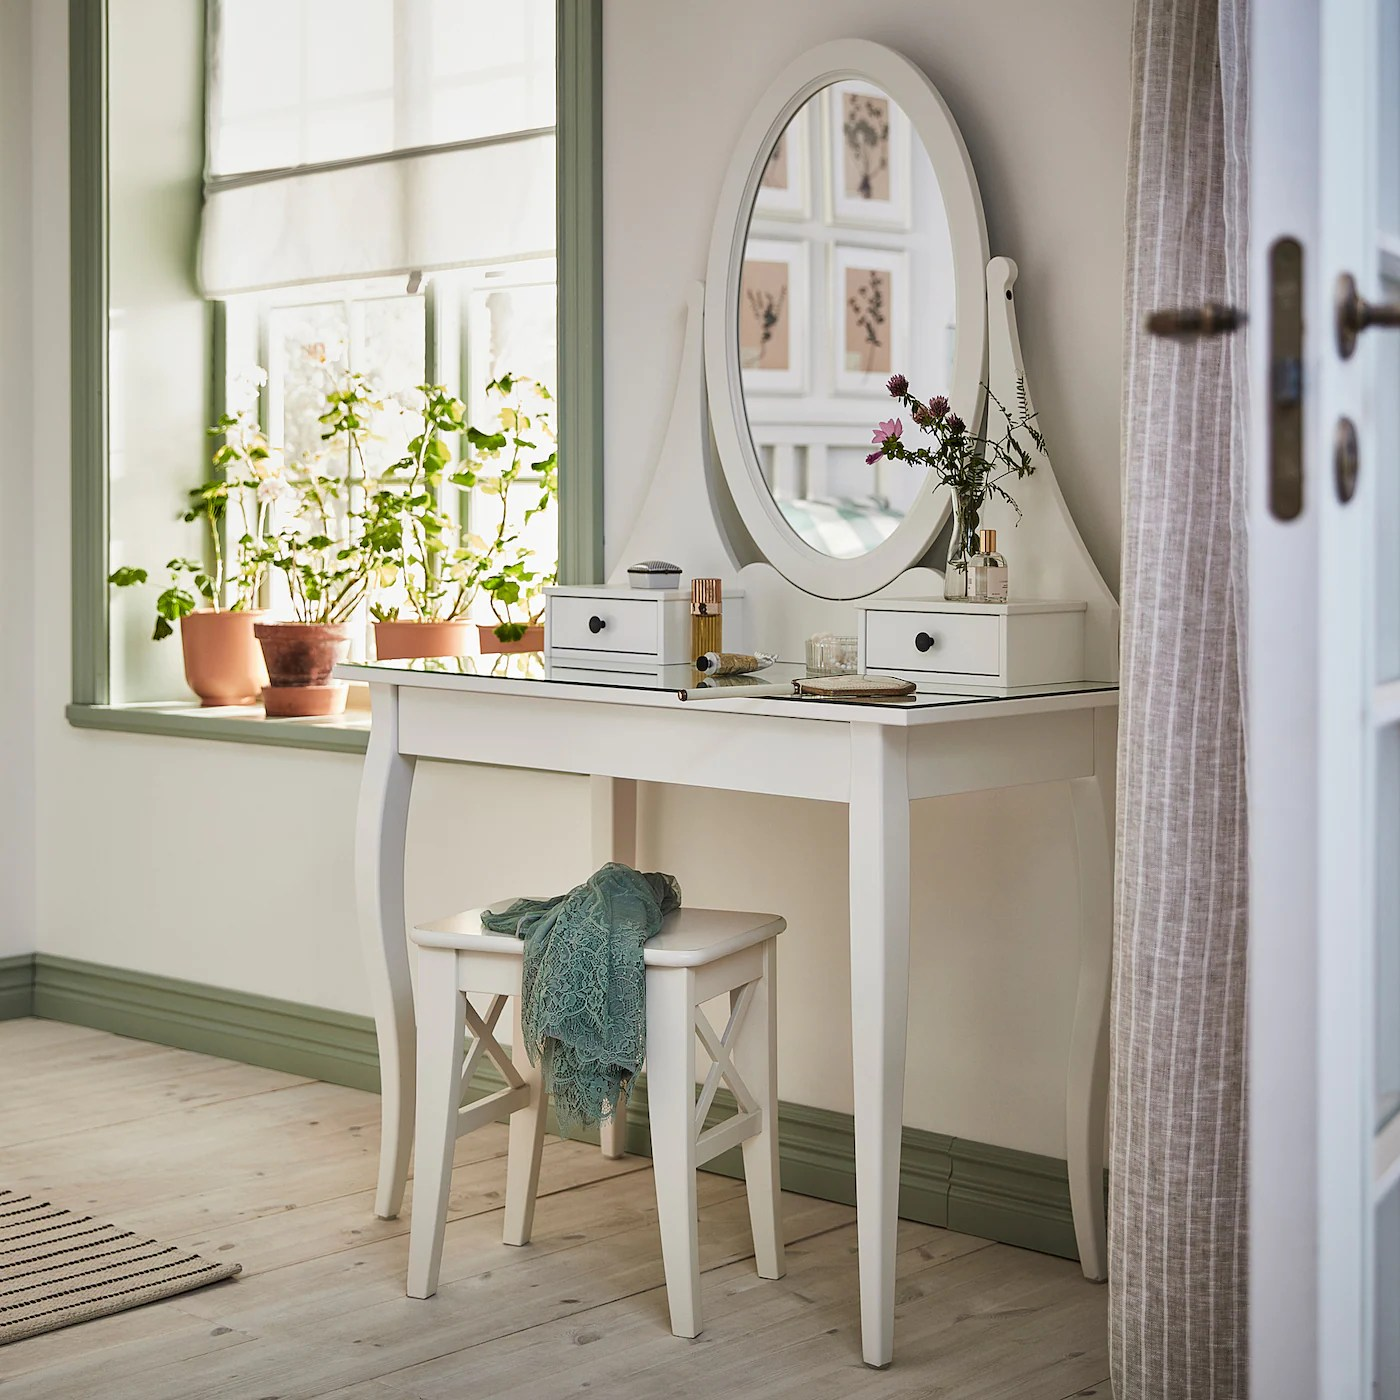 Hemnes White Dressing Table With Mirror 100x50 Cm Ikea